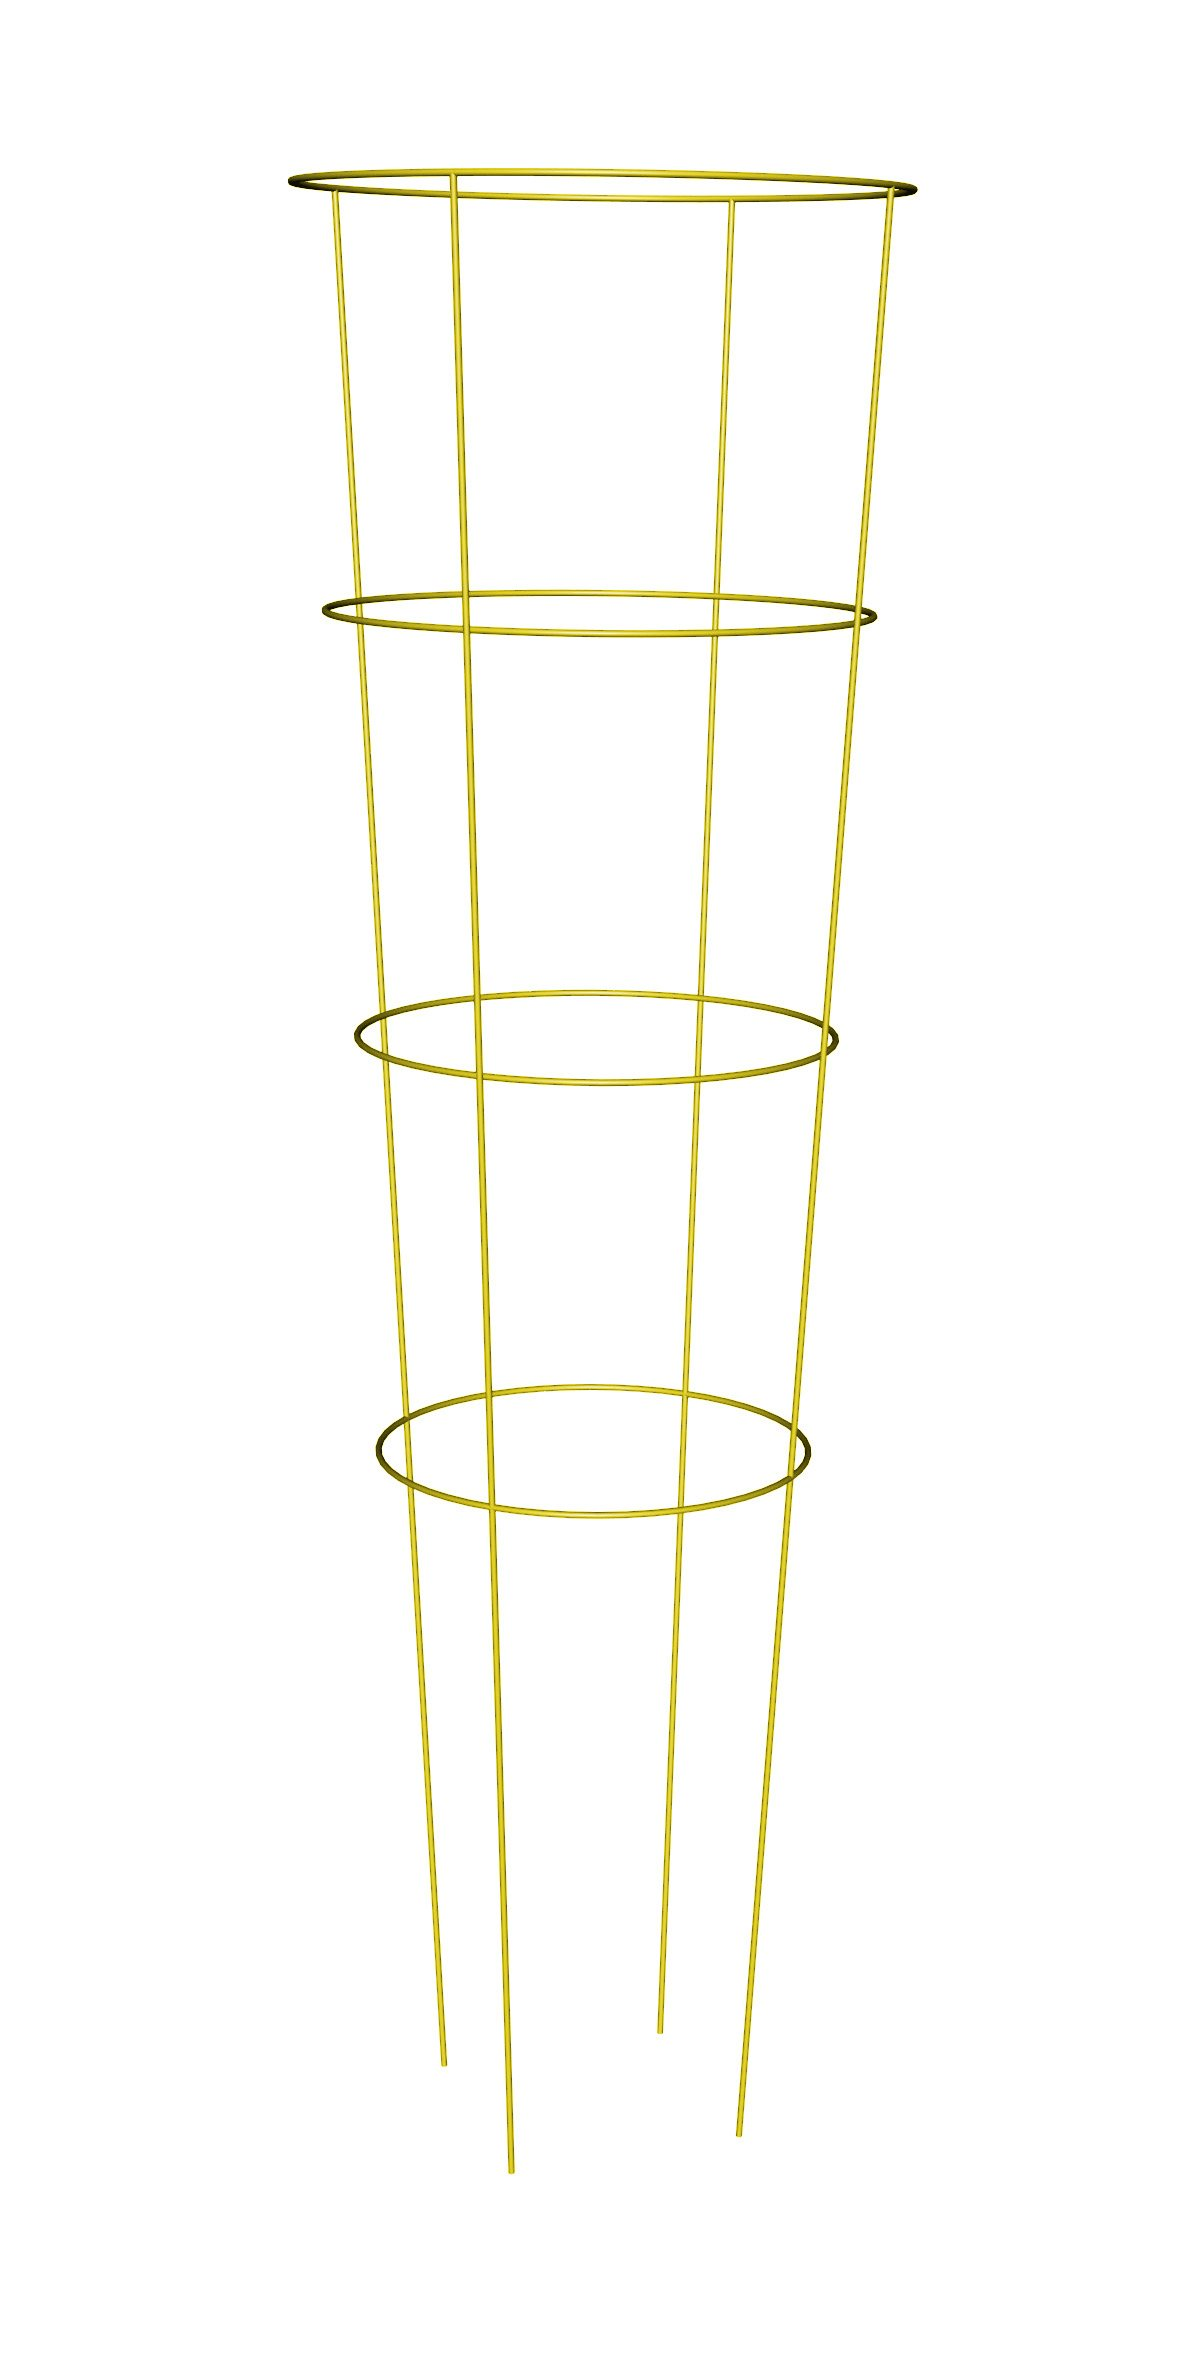 Panacea Products 89756 Heavy Duty Tomato Cage and Plant Support, 54 by 16-Inch, Yellow